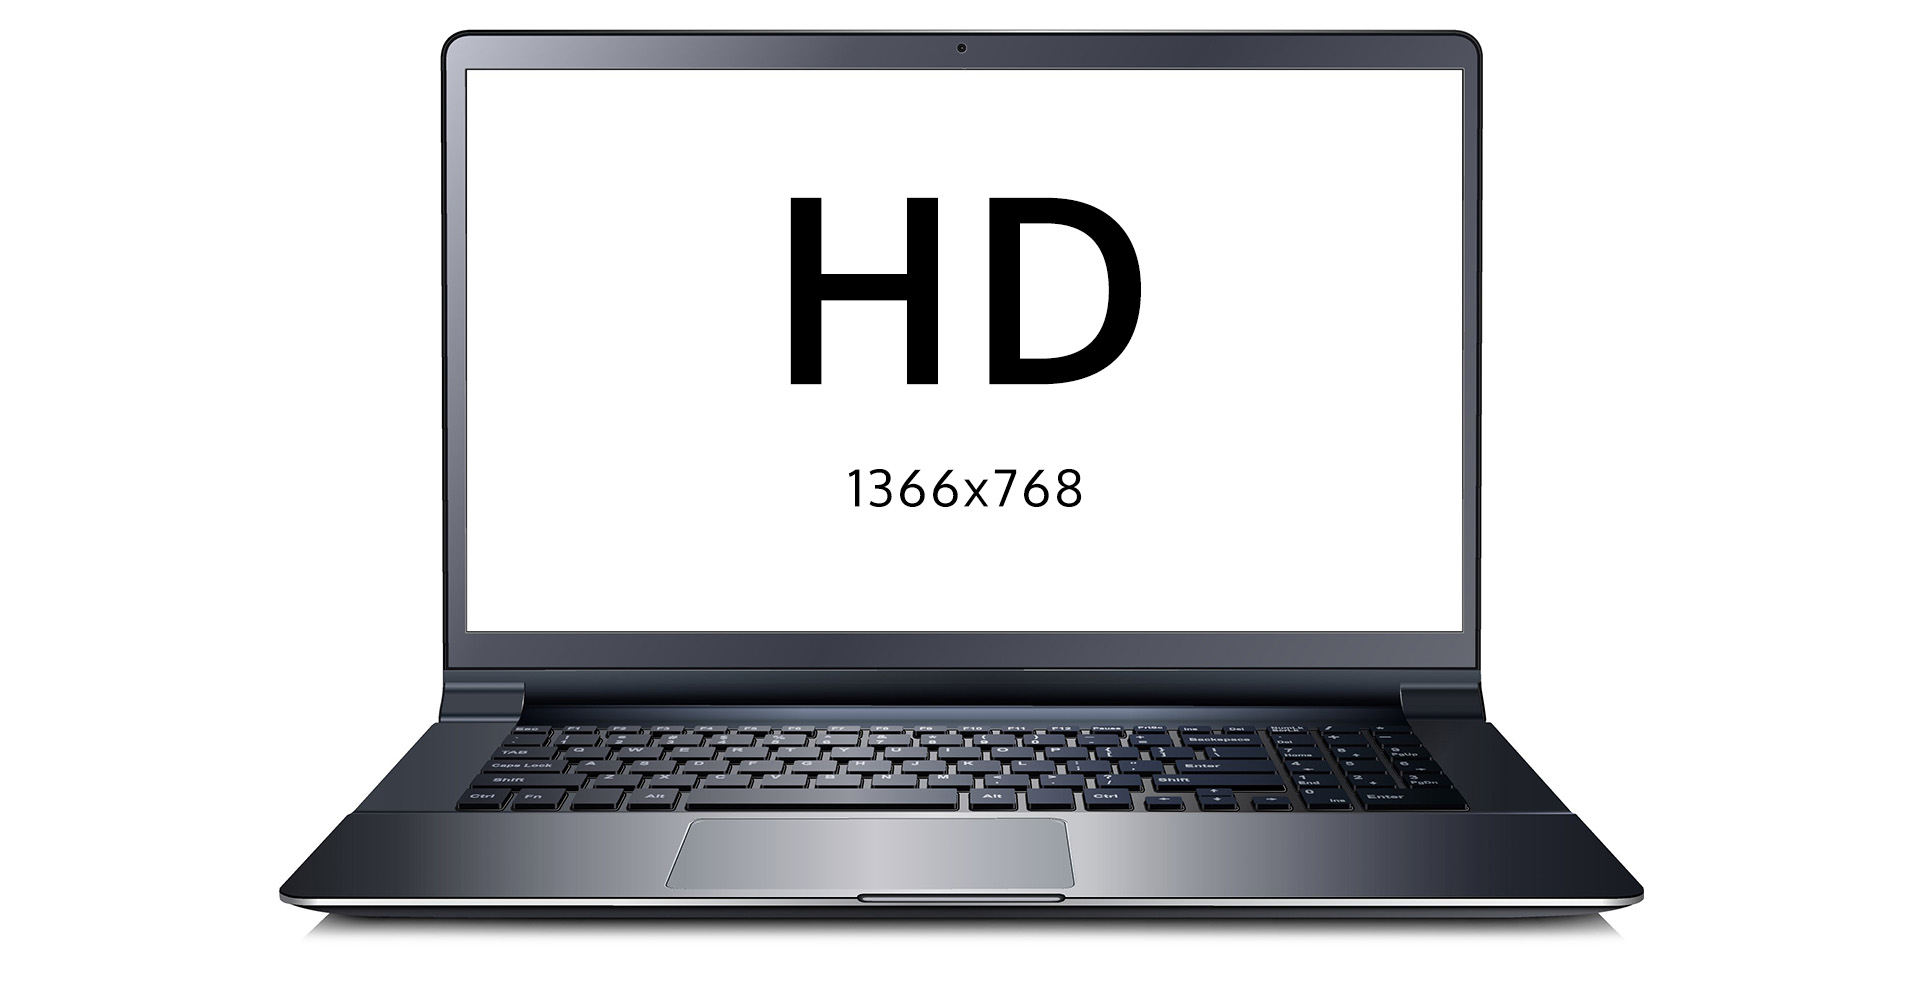 Lenovo IdeaPad 330-15IKB (81DE00T1US) 8 GB RAM/ 256 GB SSD/ Win10H                             HD 1366x768 resolutsioon